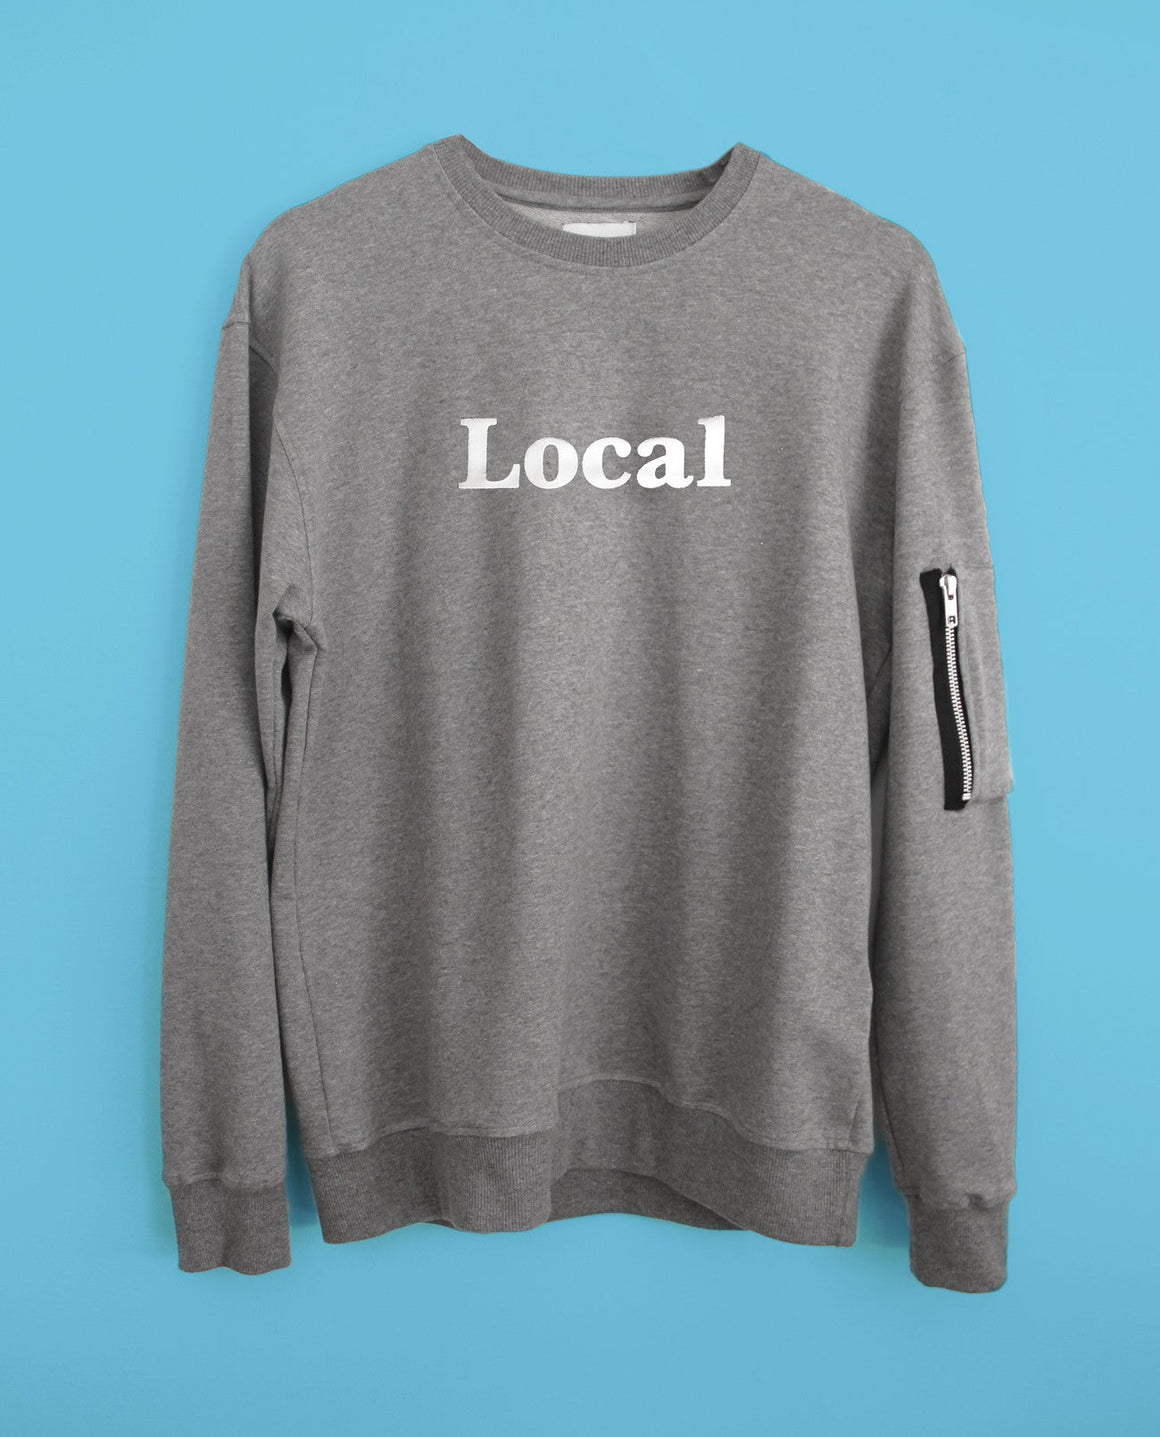 Local Print Sweatshirt - Local Pattern  - 2